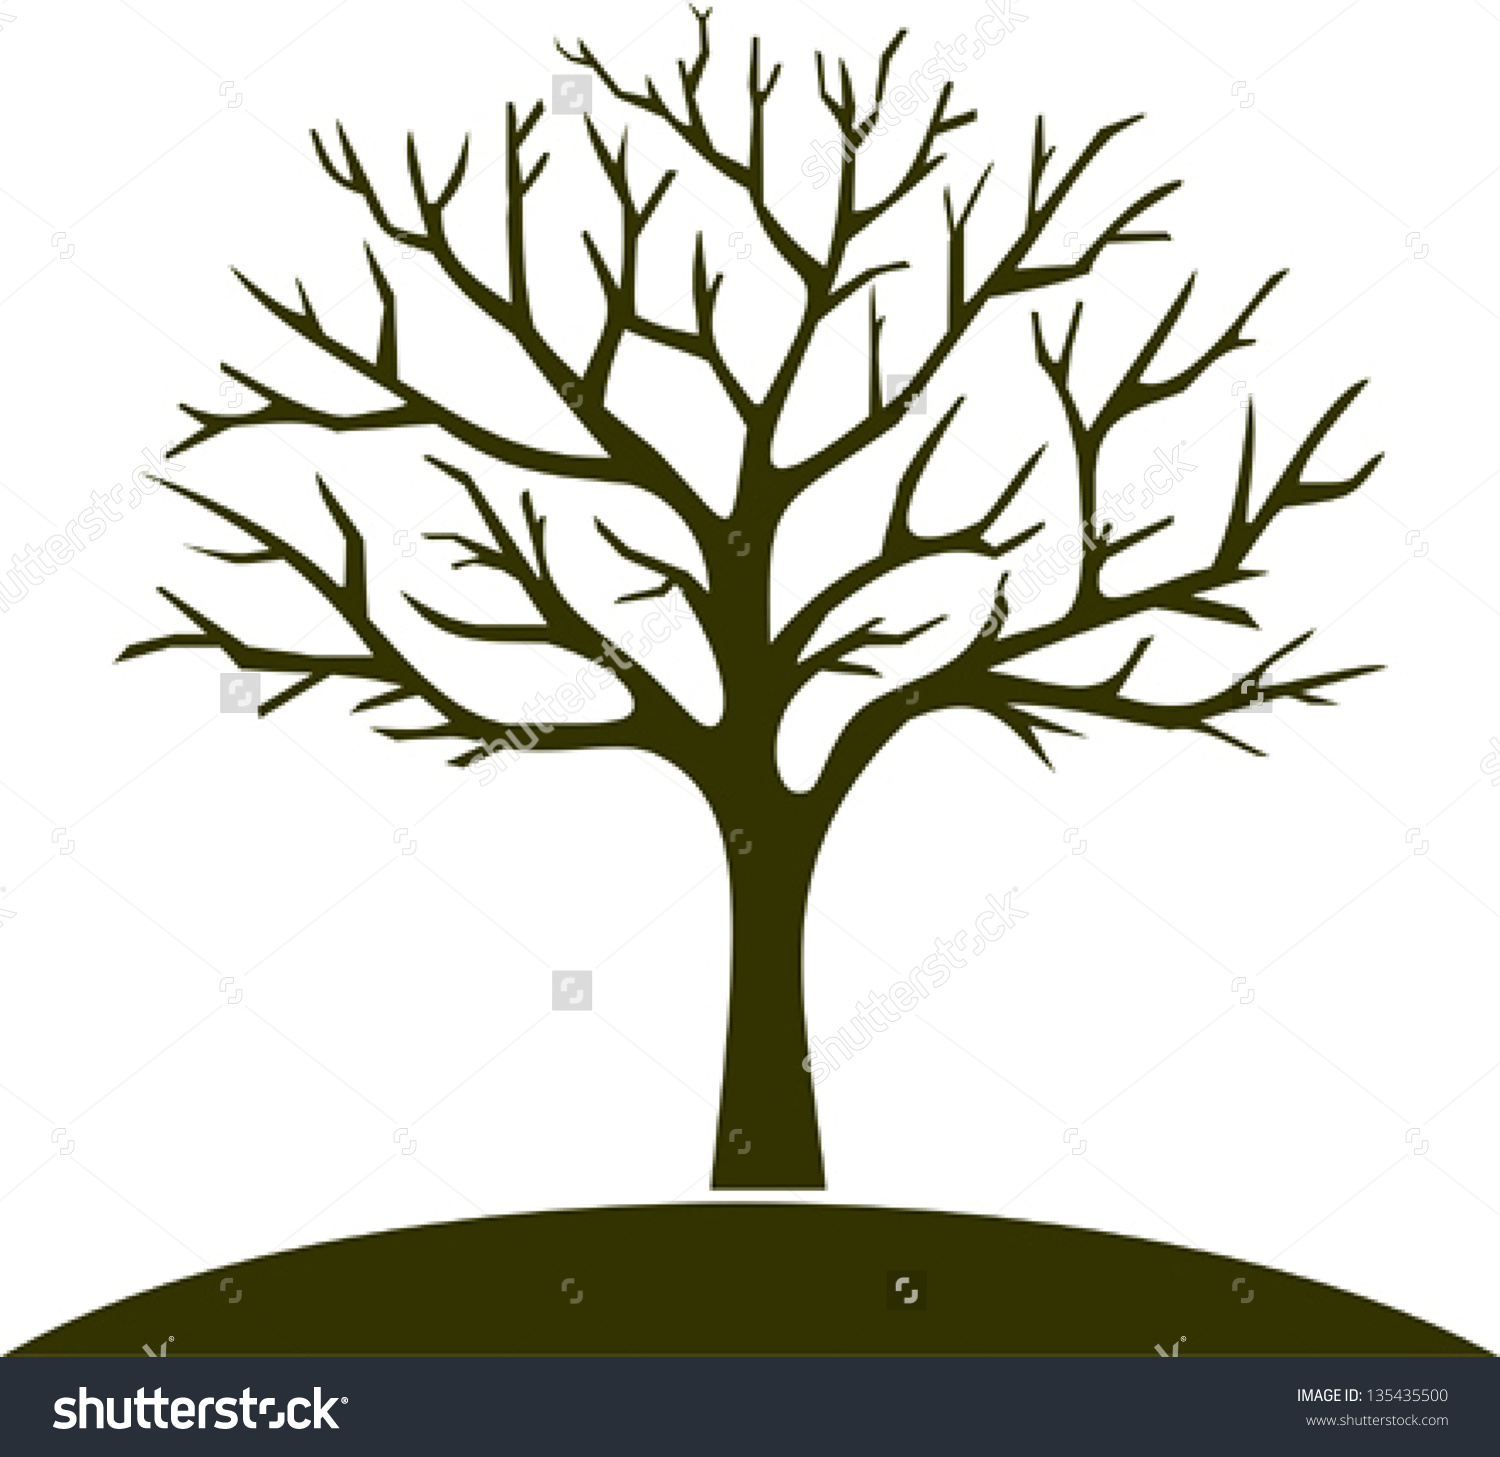 clipart vector winter tree - Clipground